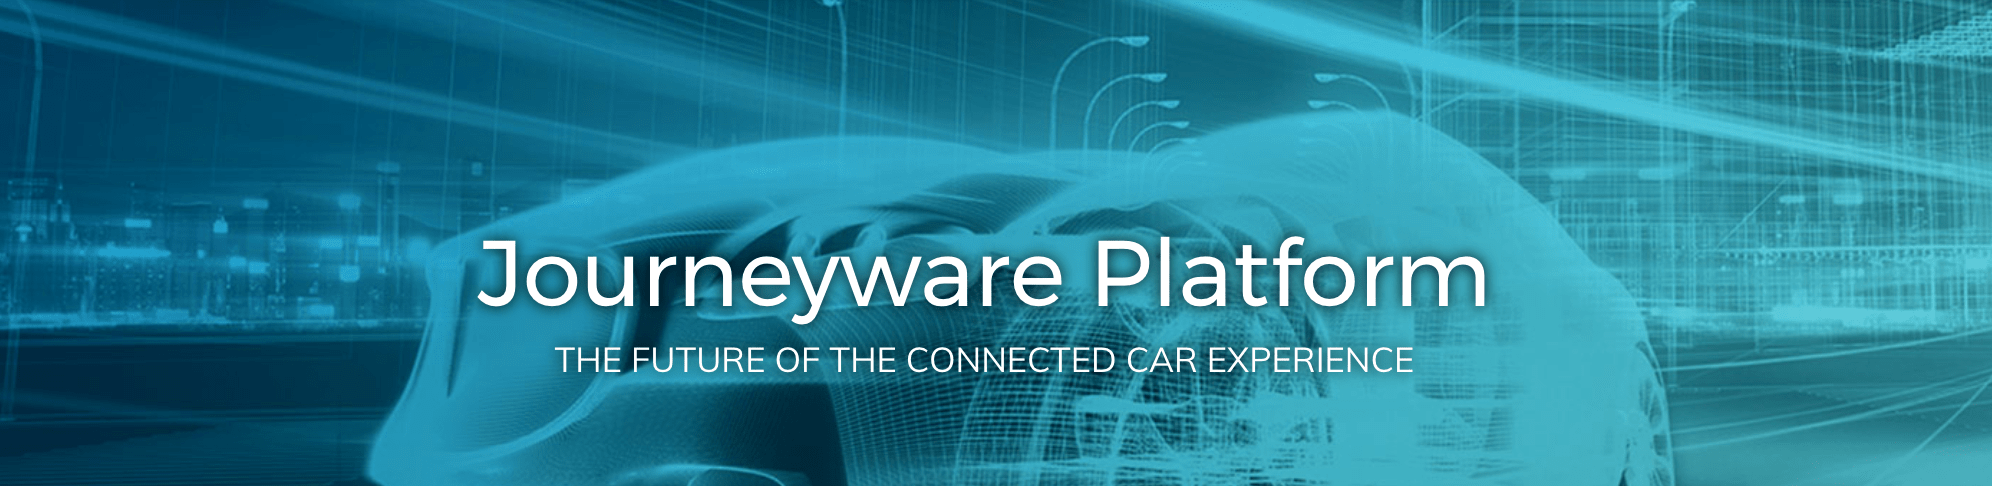 Journeyware Connected Car Platform